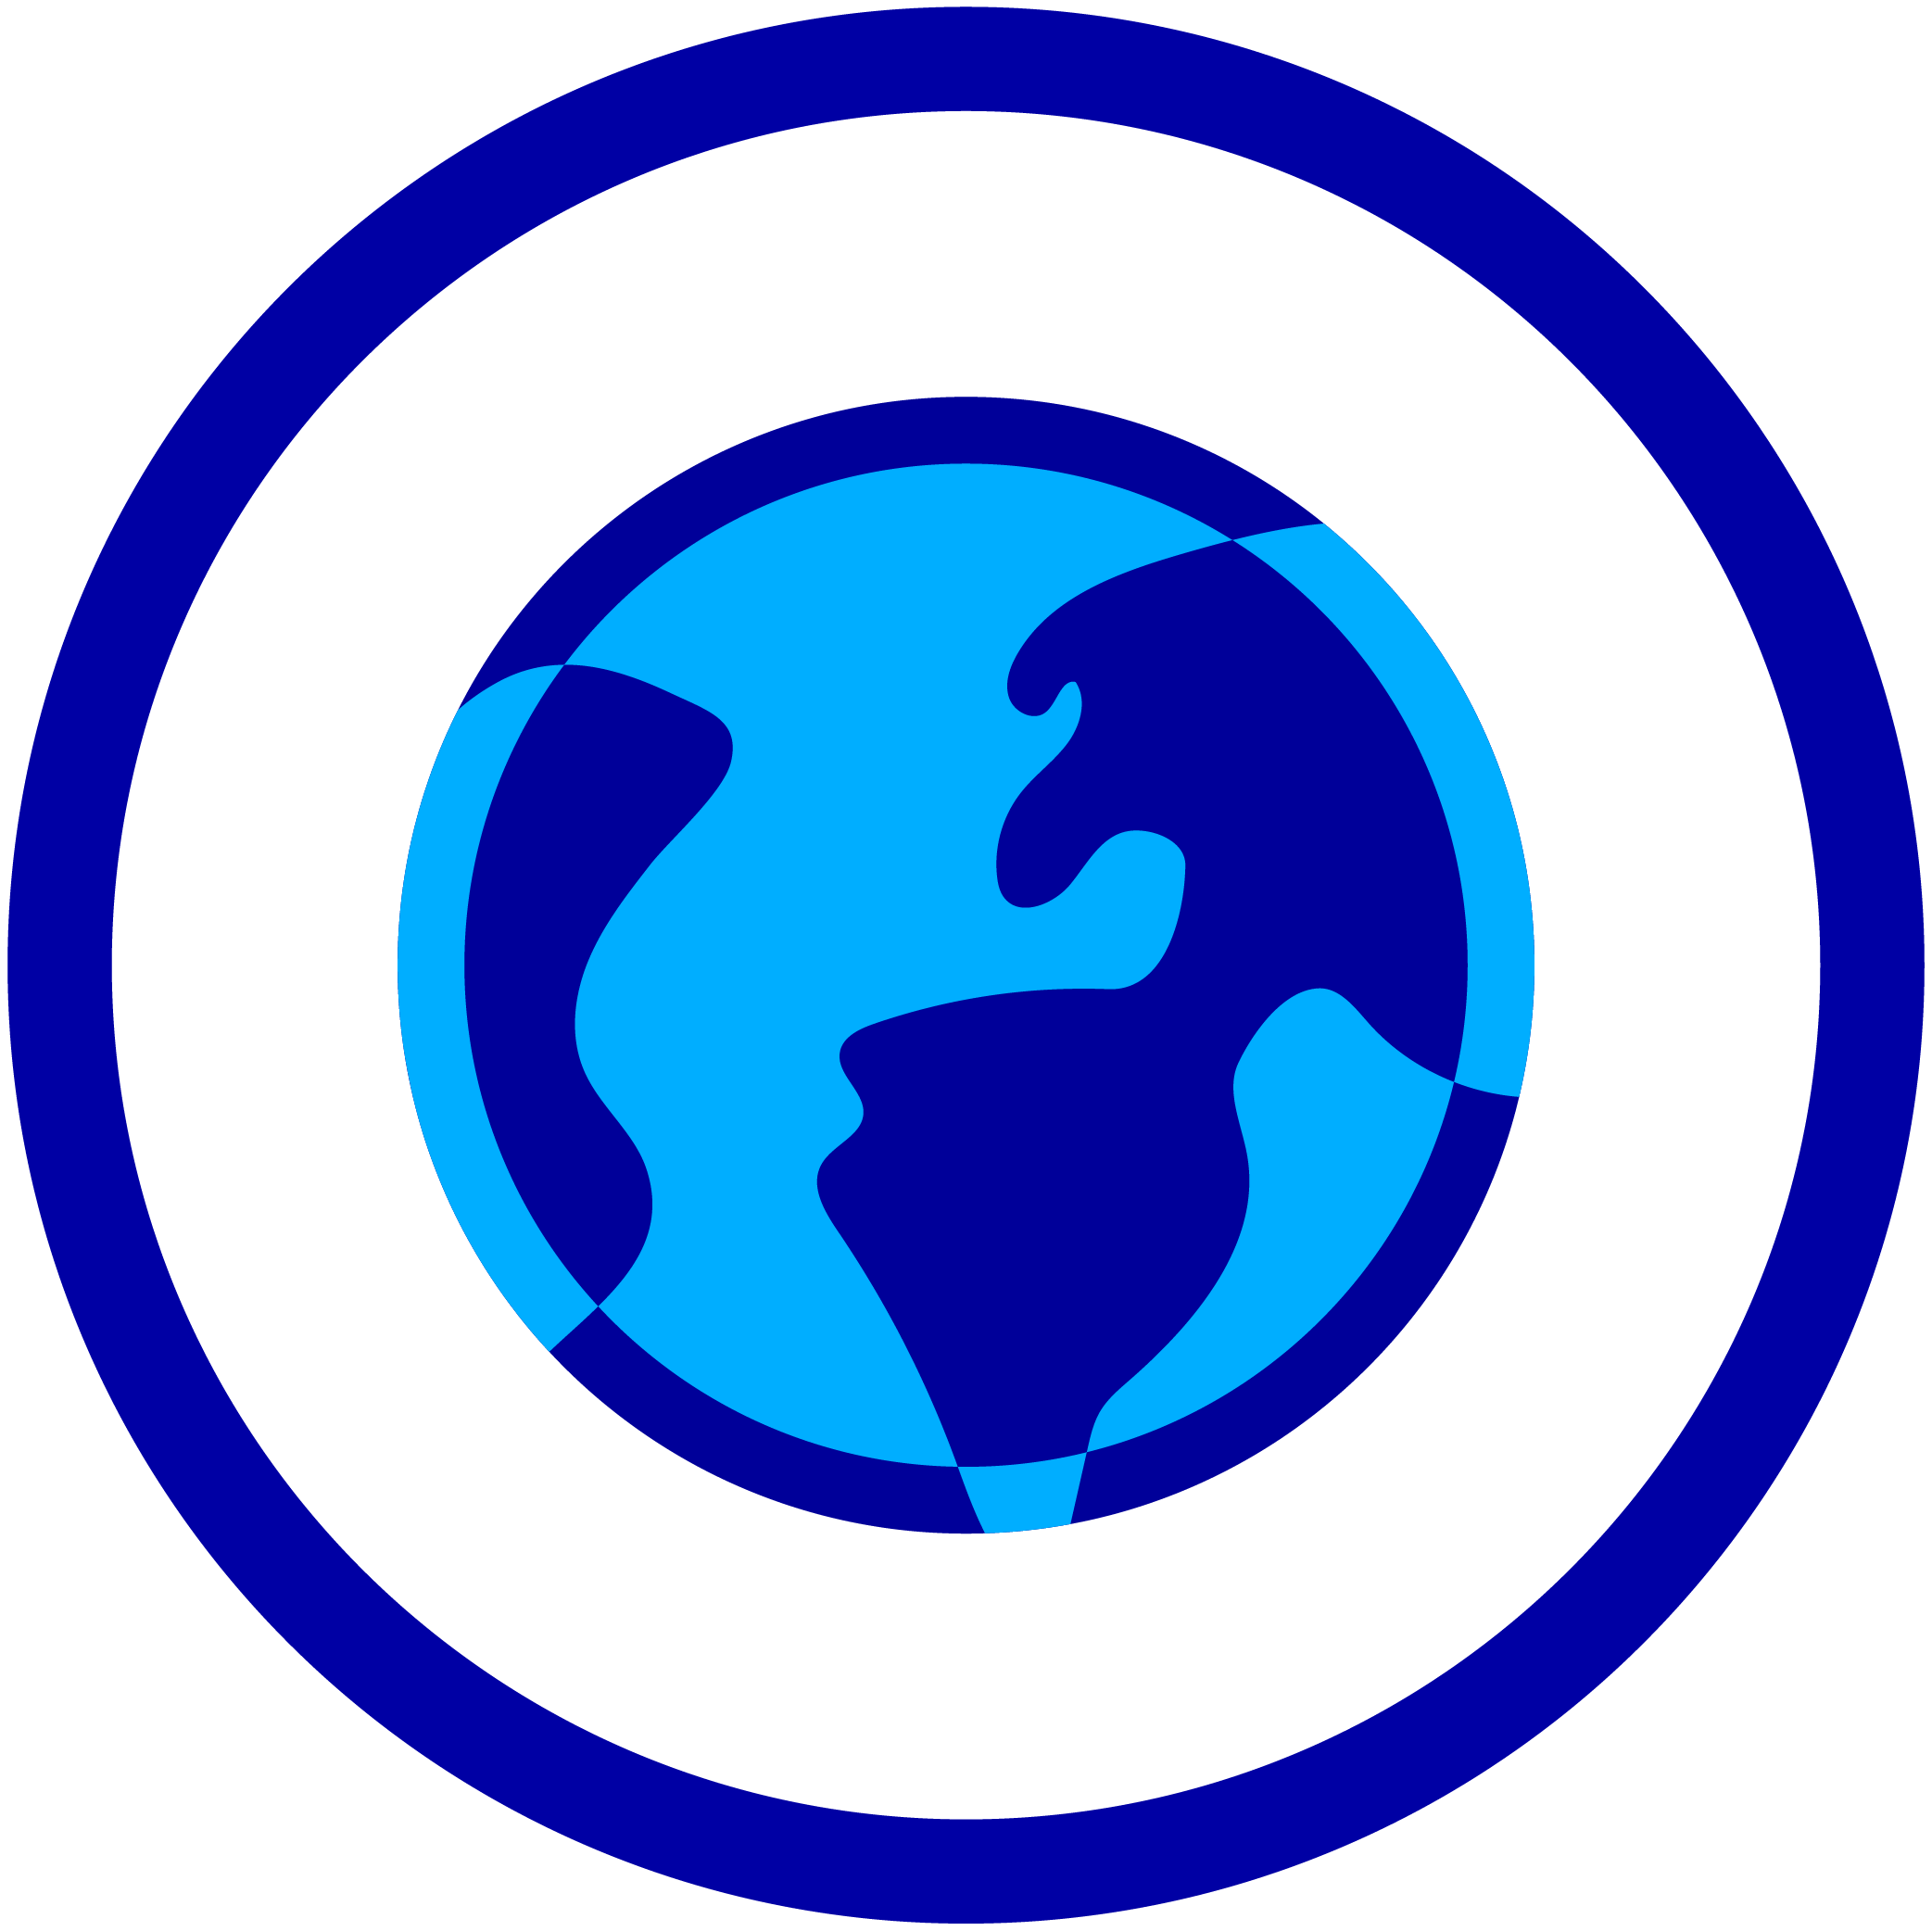 https://cl.fi-group.com/wp-content/uploads/sites/13/2021/02/blue-icons-set_1-13.png